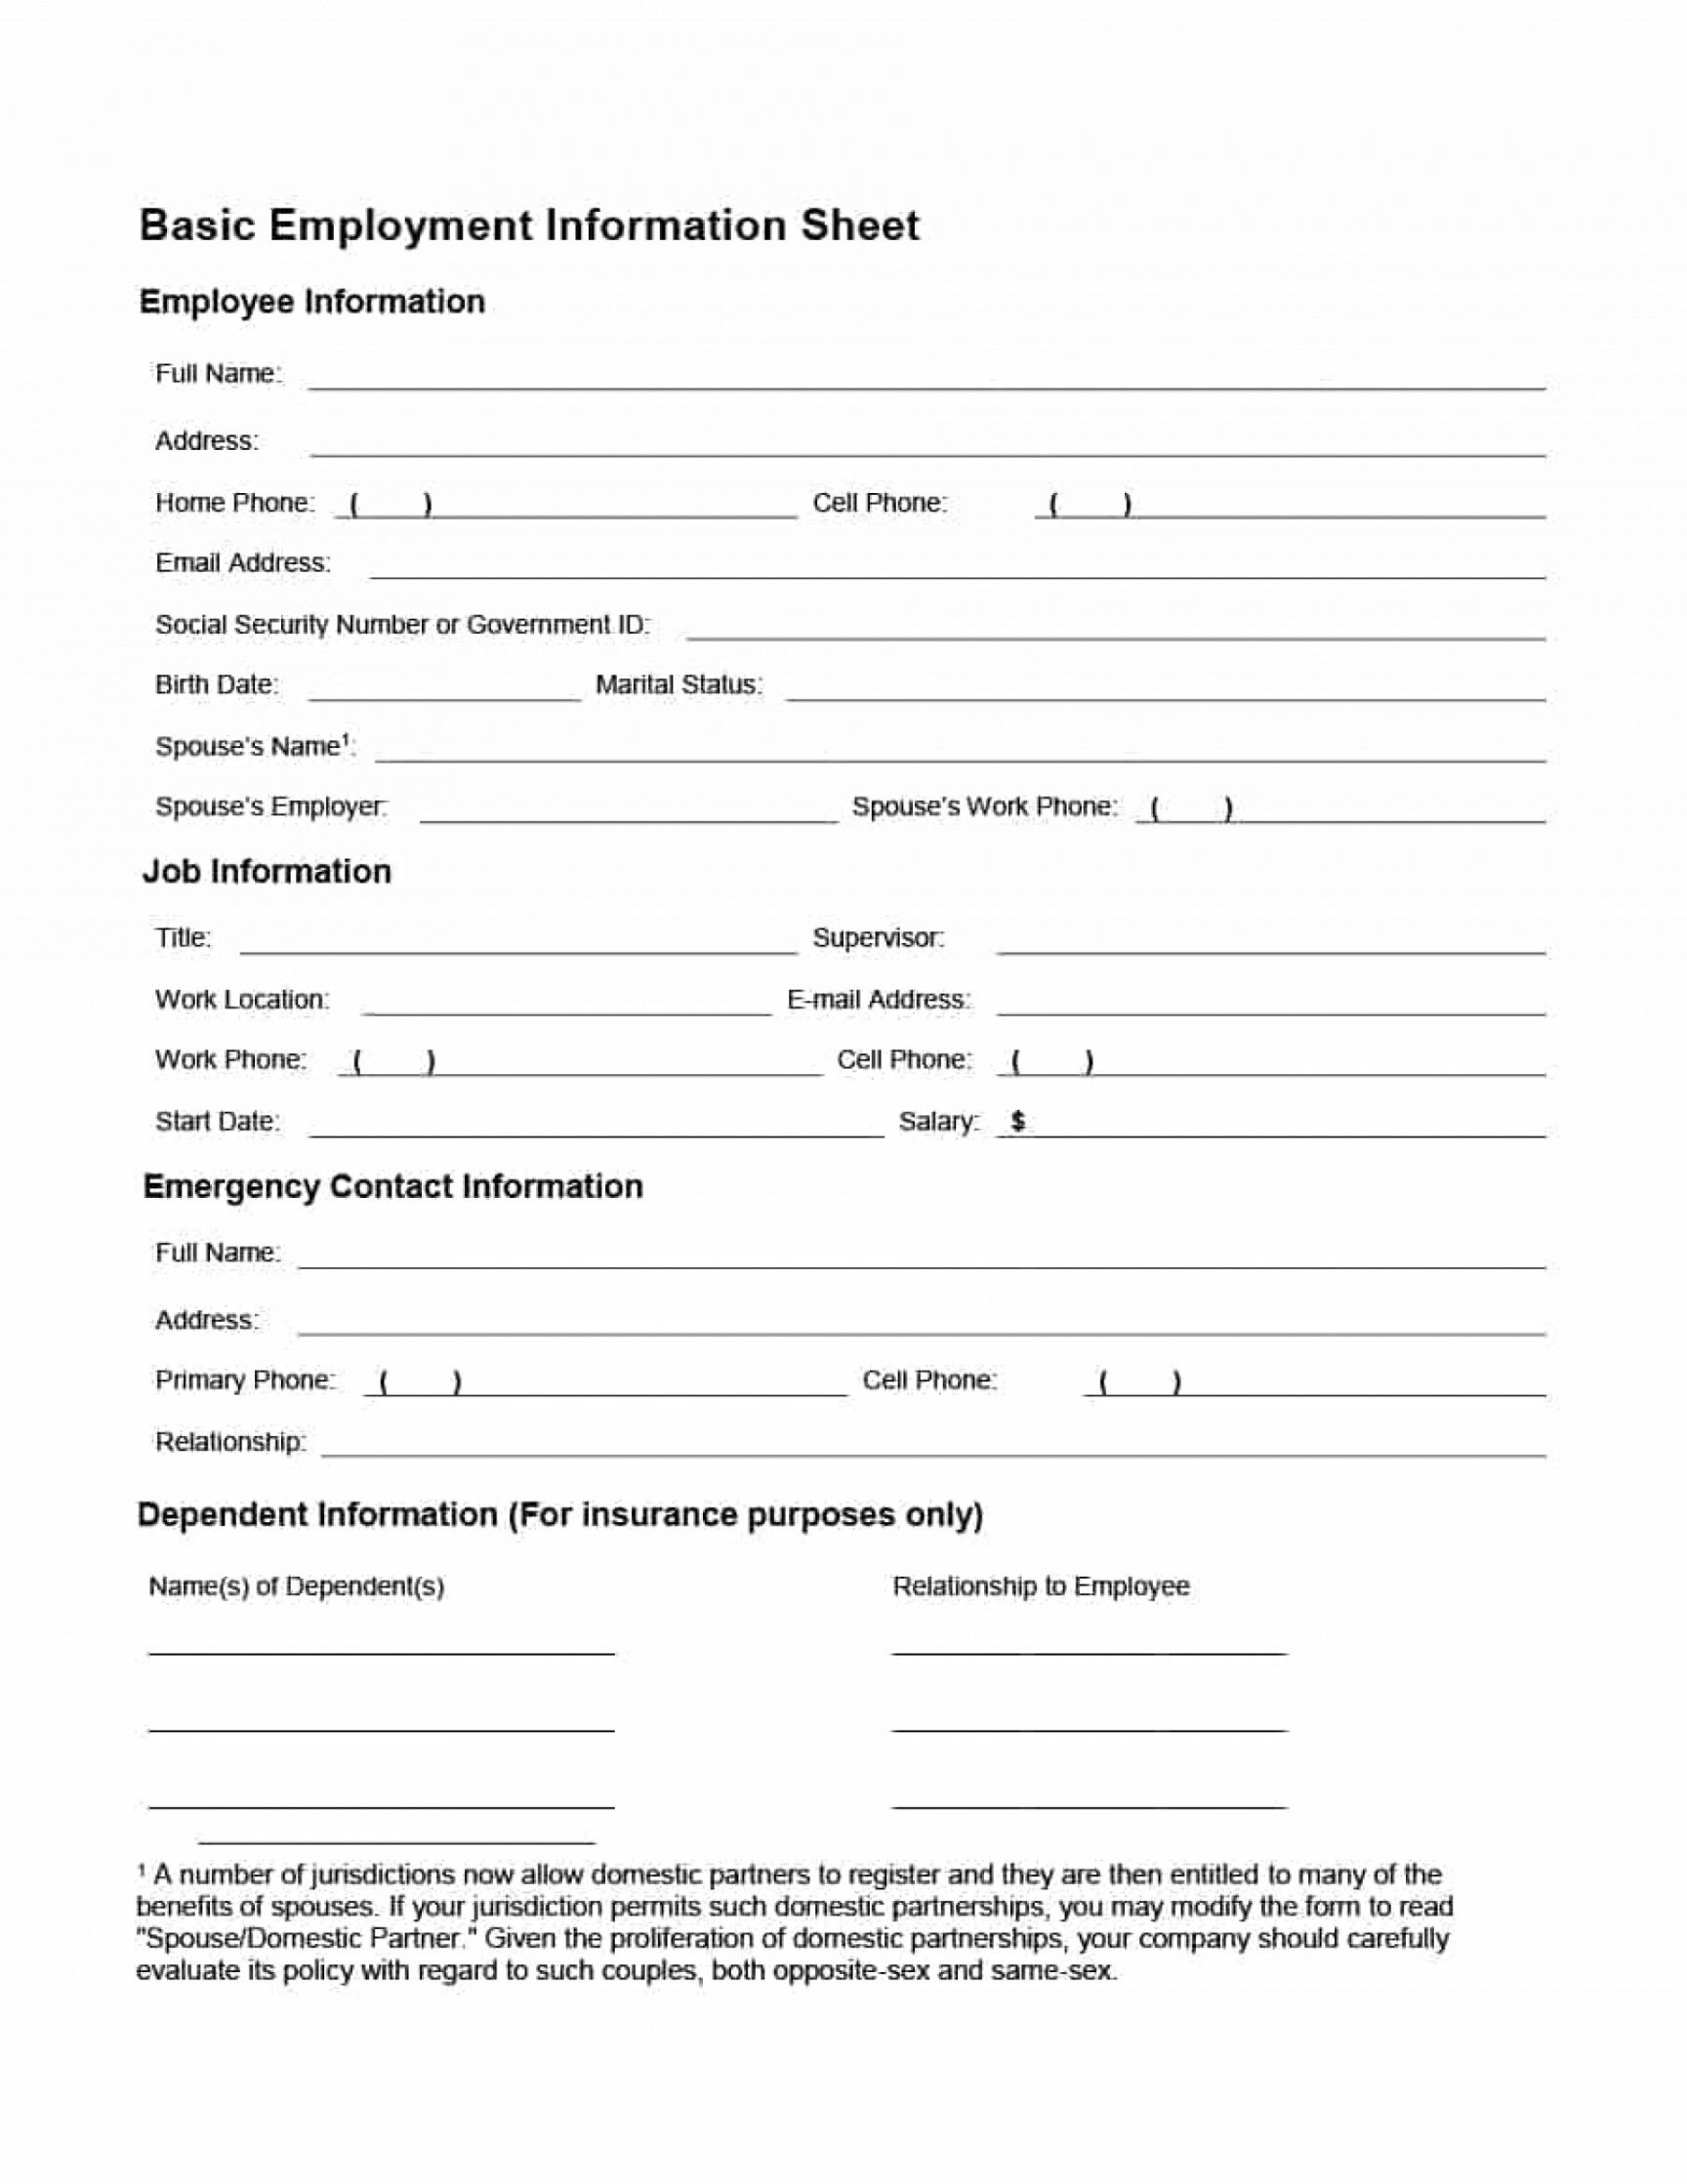 Employee Personnel File Checklist Template